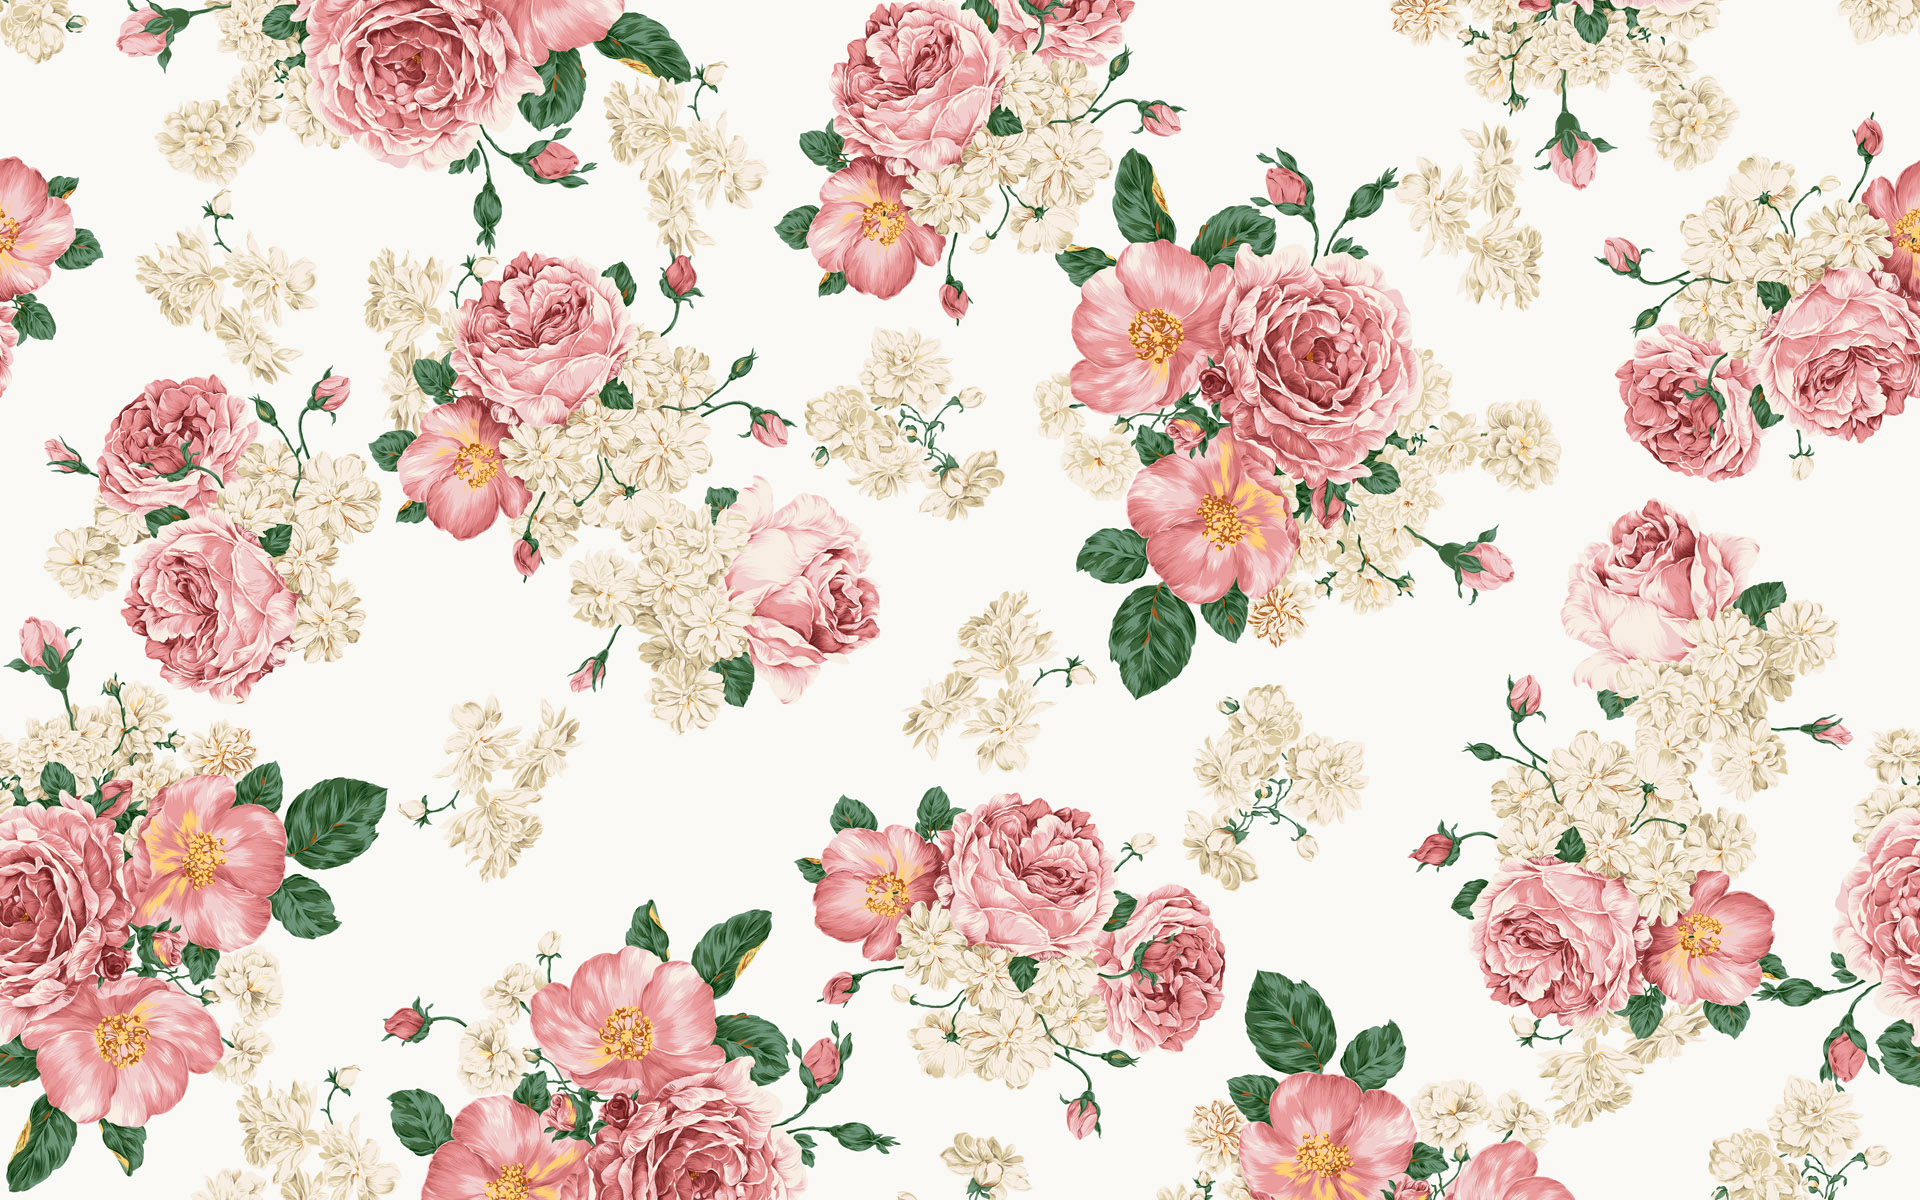 Vintage flower wallpapers hd wallpaper vintage flower wallpapers voltagebd Gallery